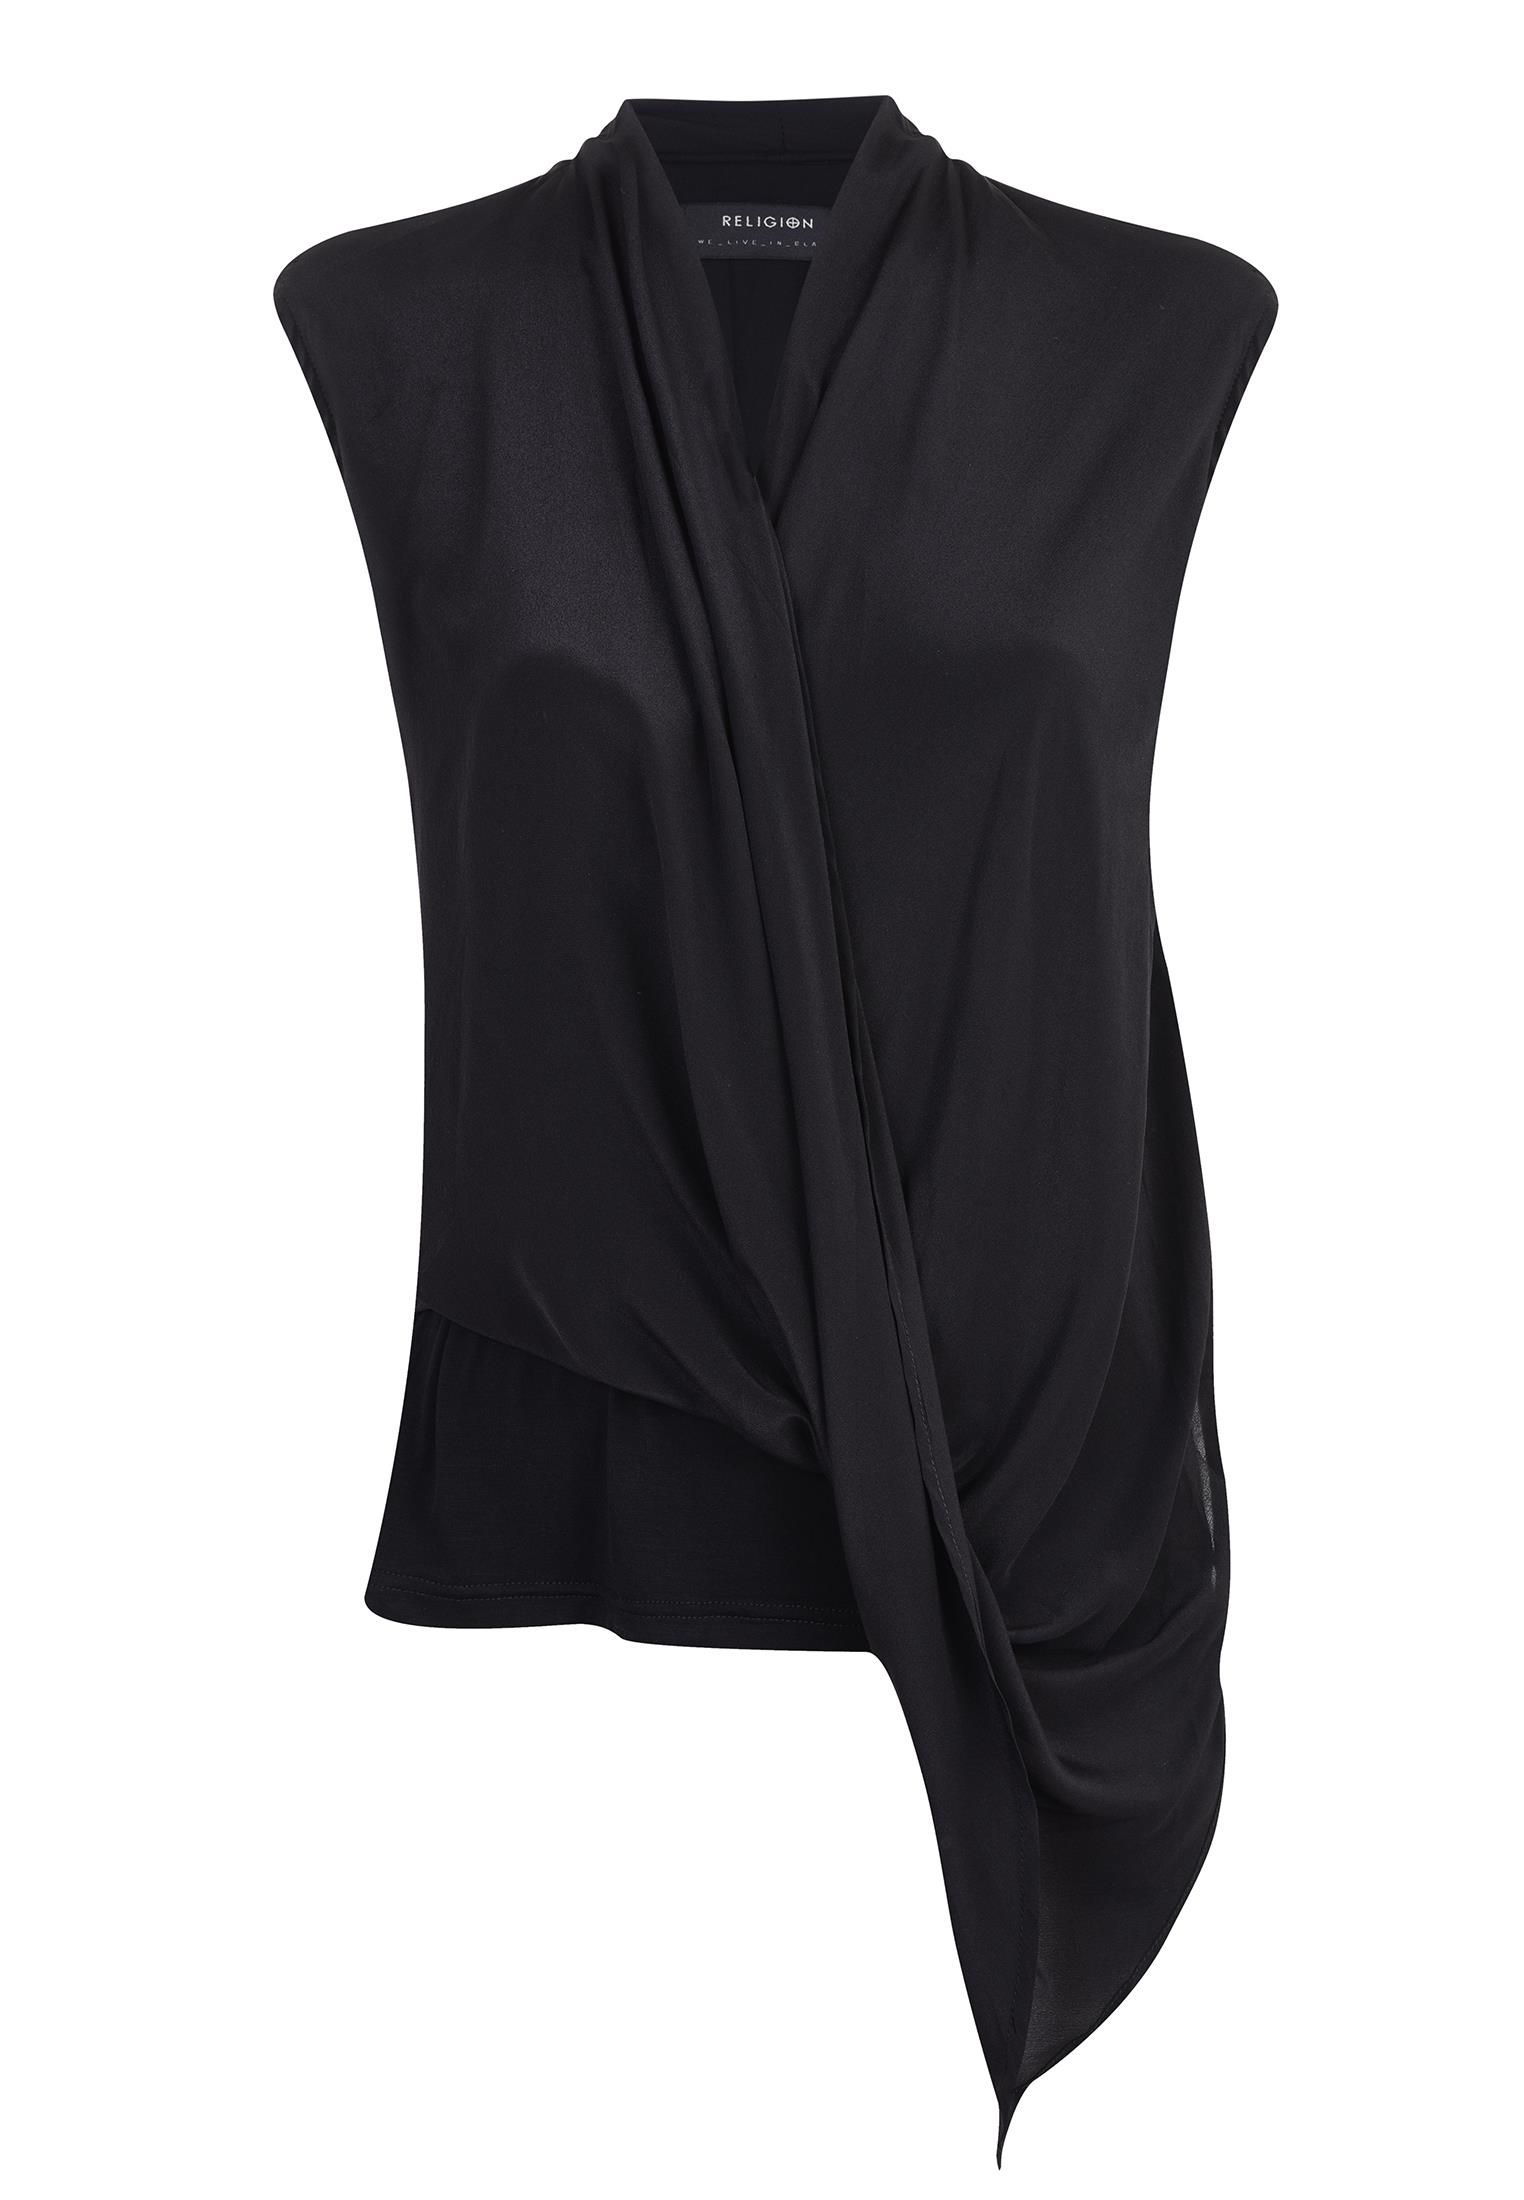 Religion Dynamic sleeveless top, Black